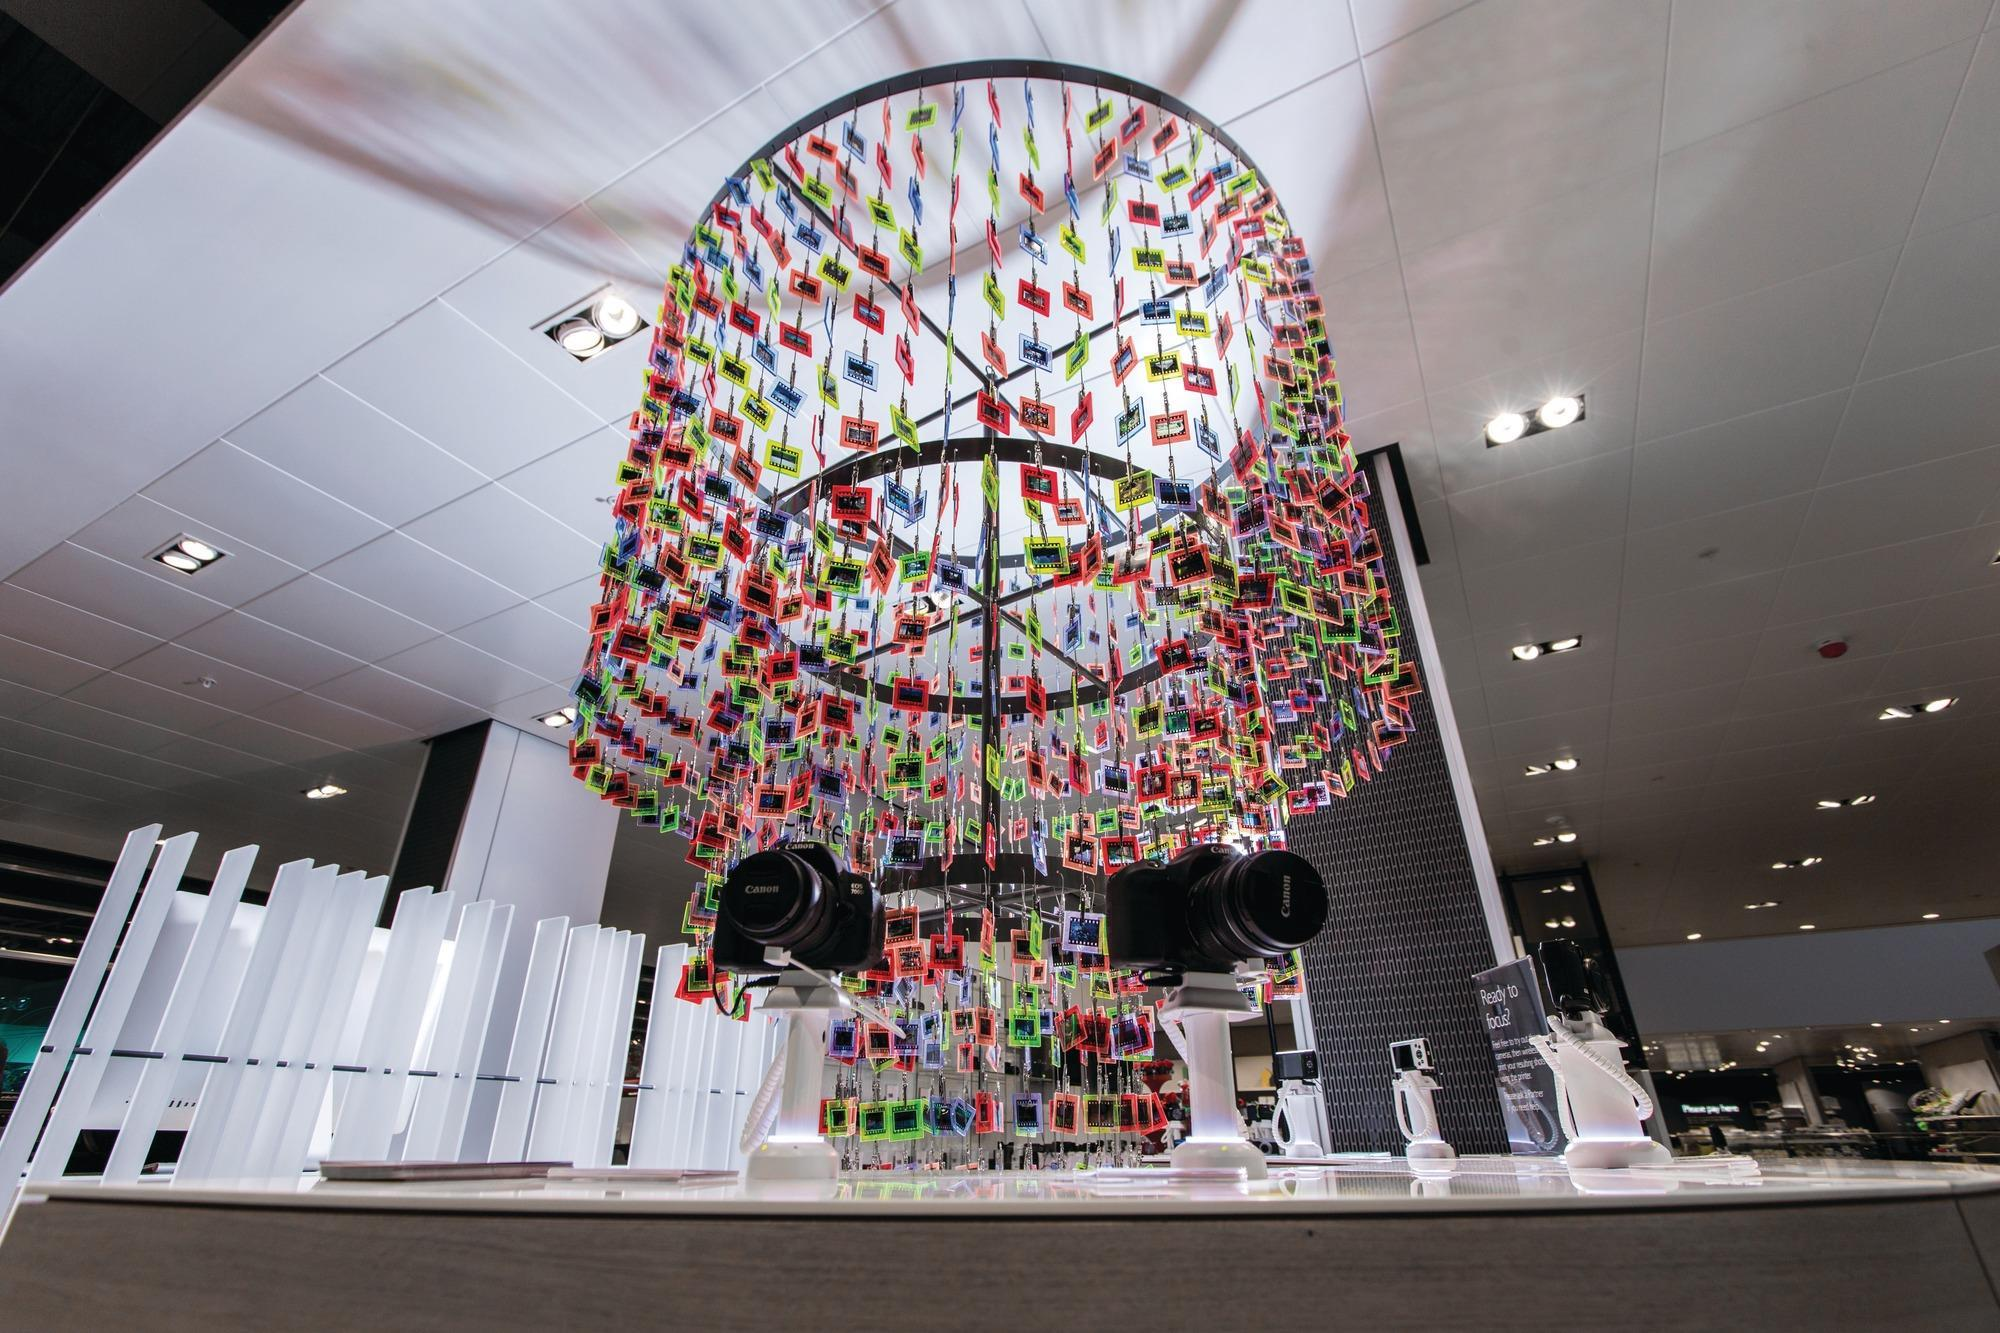 Cool chandeliers john lewis as your own house equipments aloea 100 glass display cabinets john lewis corner shelving googl arubaitofo Gallery